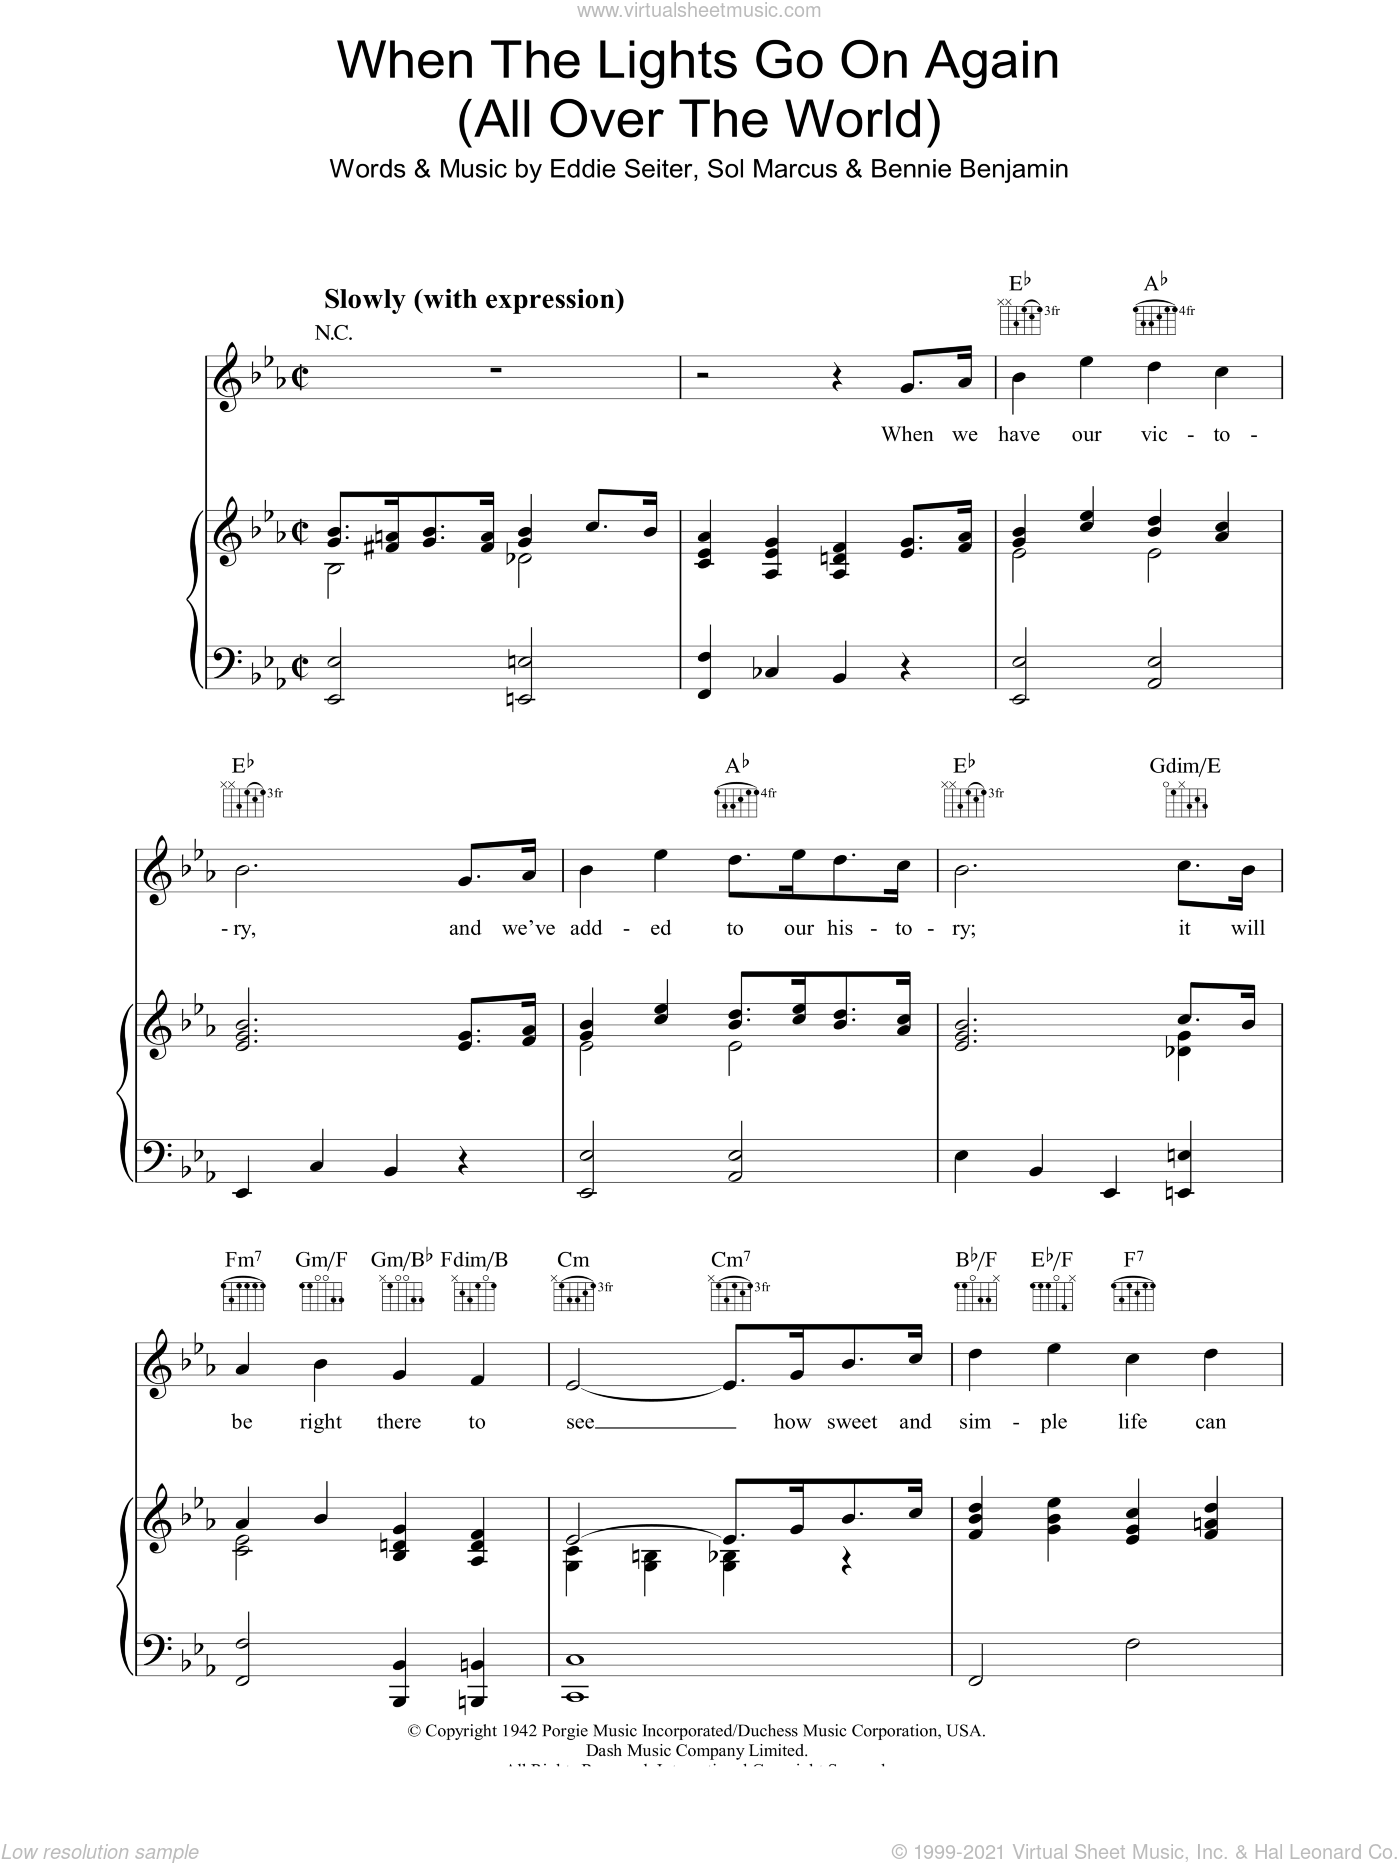 When The Lights Go On Again (All Over The World) sheet music for voice, piano or guitar by Vaughn Monroe, Bennie Benjamin, Eddie Seiler and Sol Marcus, intermediate skill level